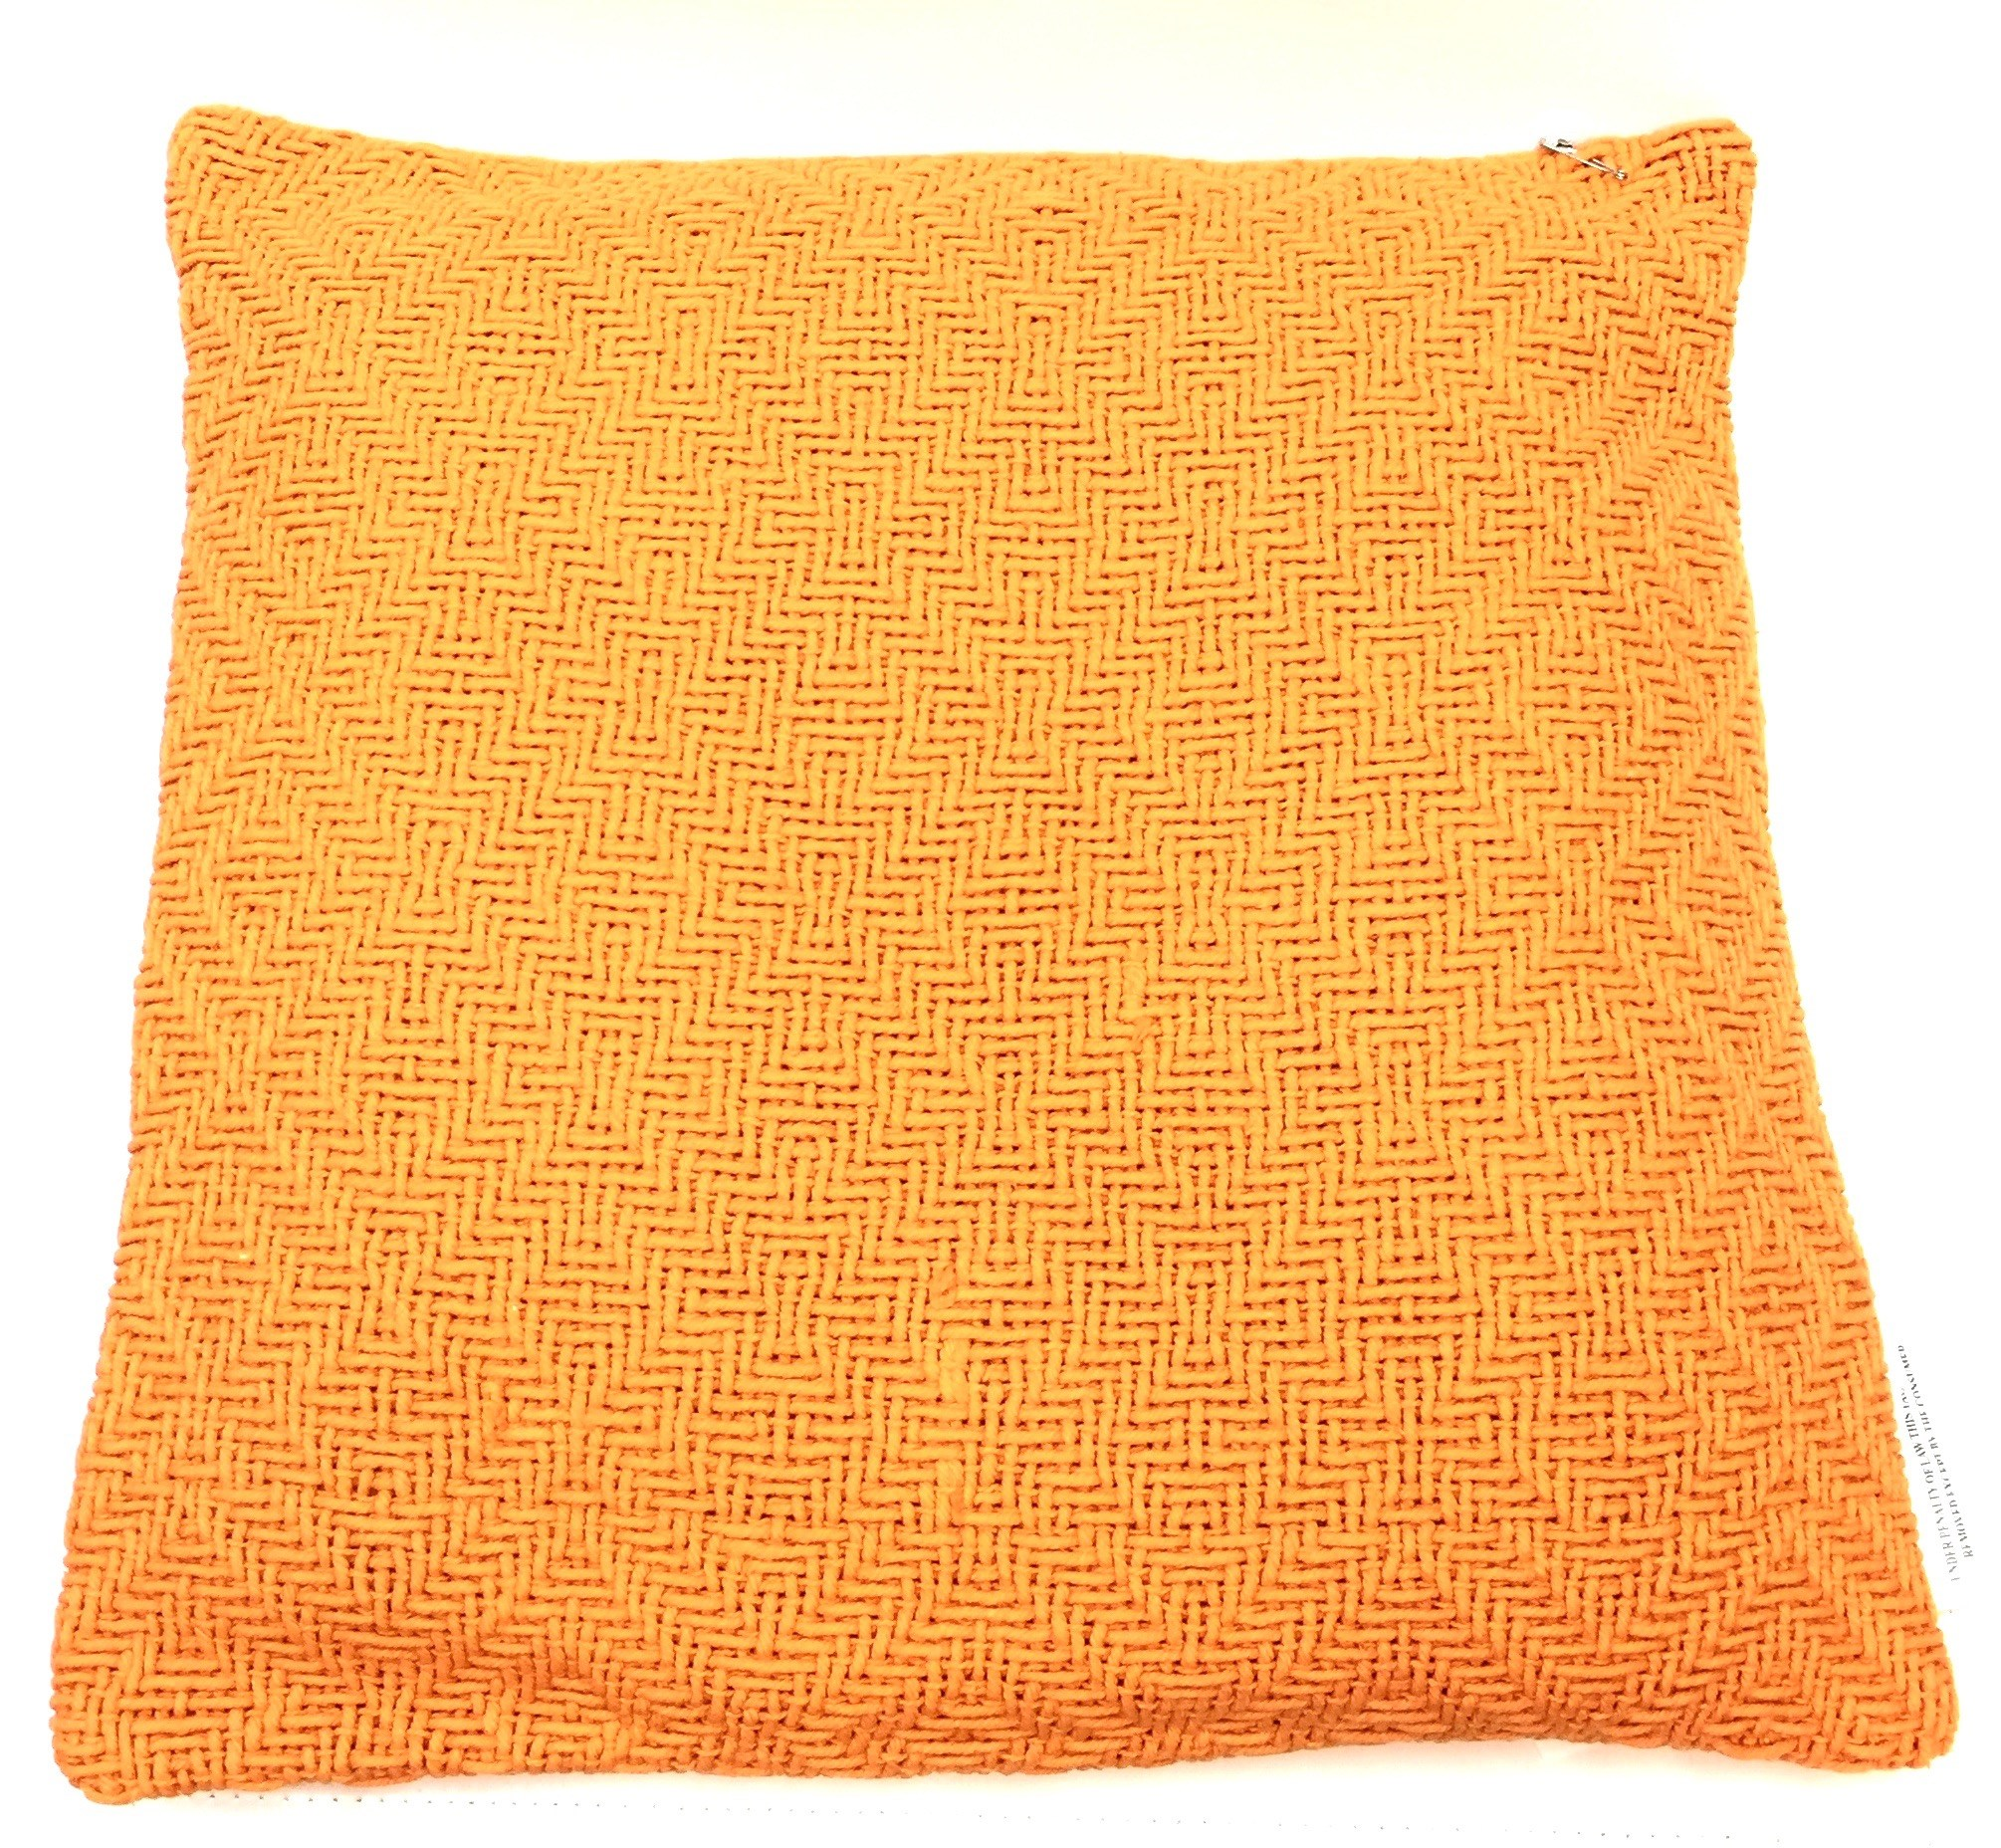 (543-553) 18x18 Chelsea Pillow - Orange